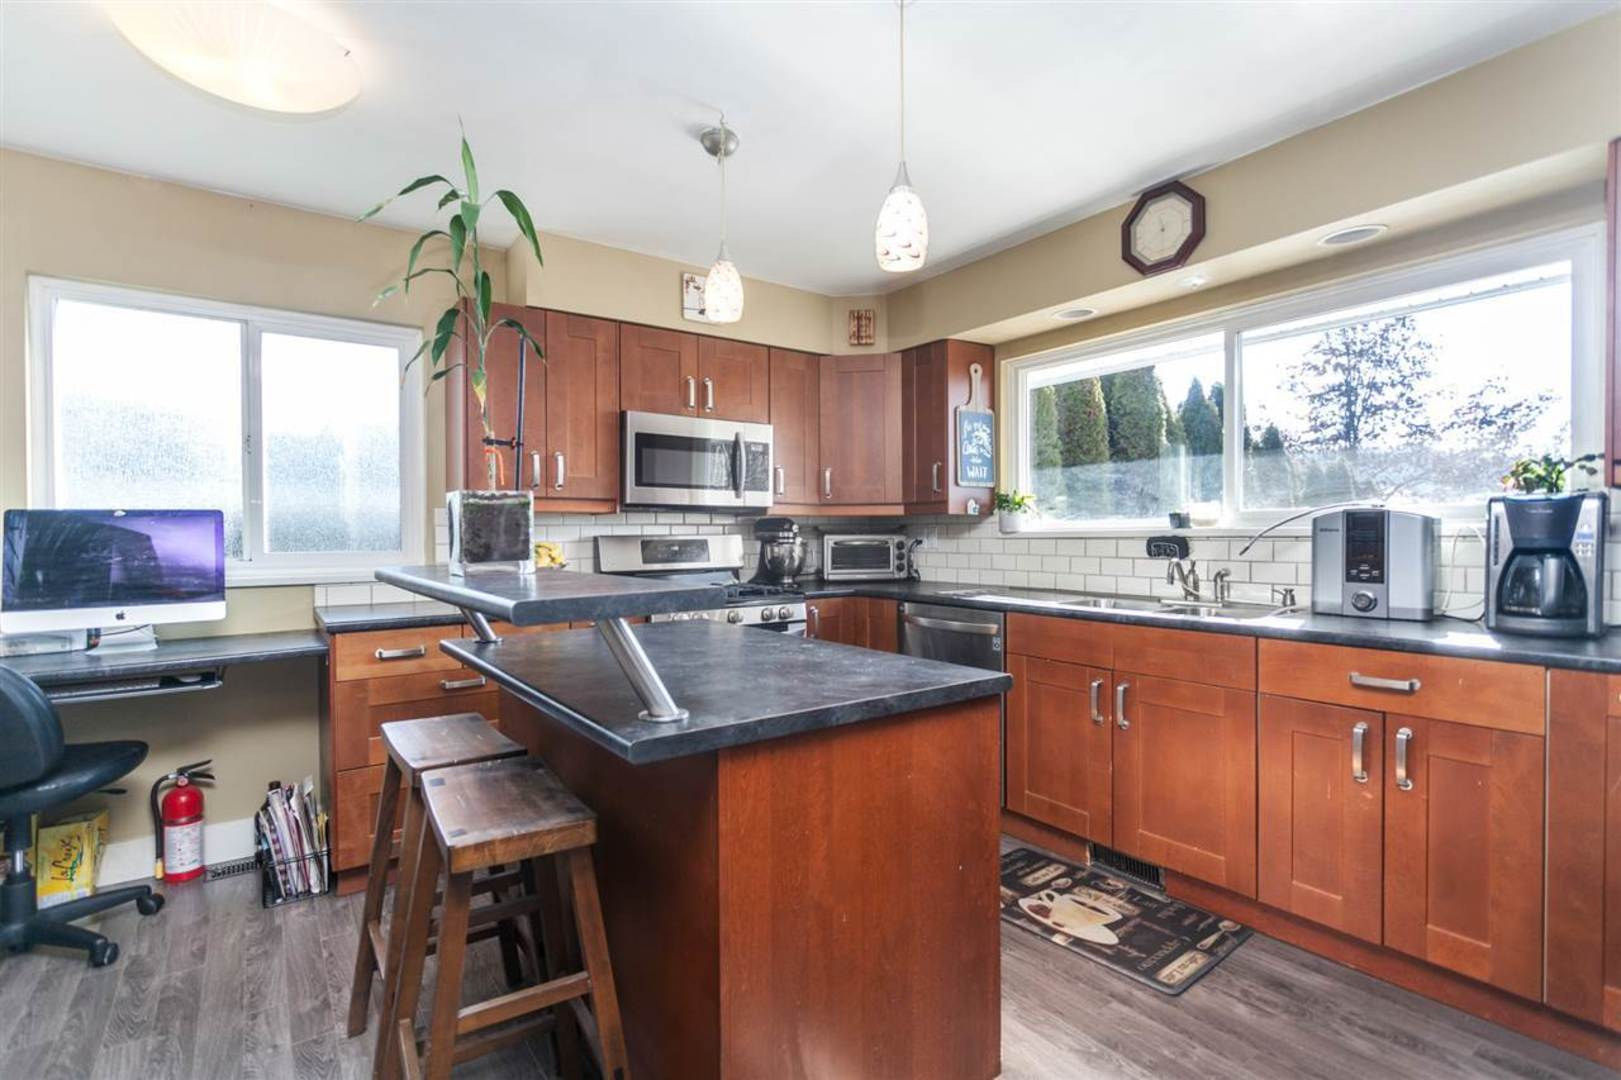 2830-dollarton-highway-windsor-park-nv-north-vancouver-10 at 2830 Dollarton Highway, Windsor Park NV, North Vancouver